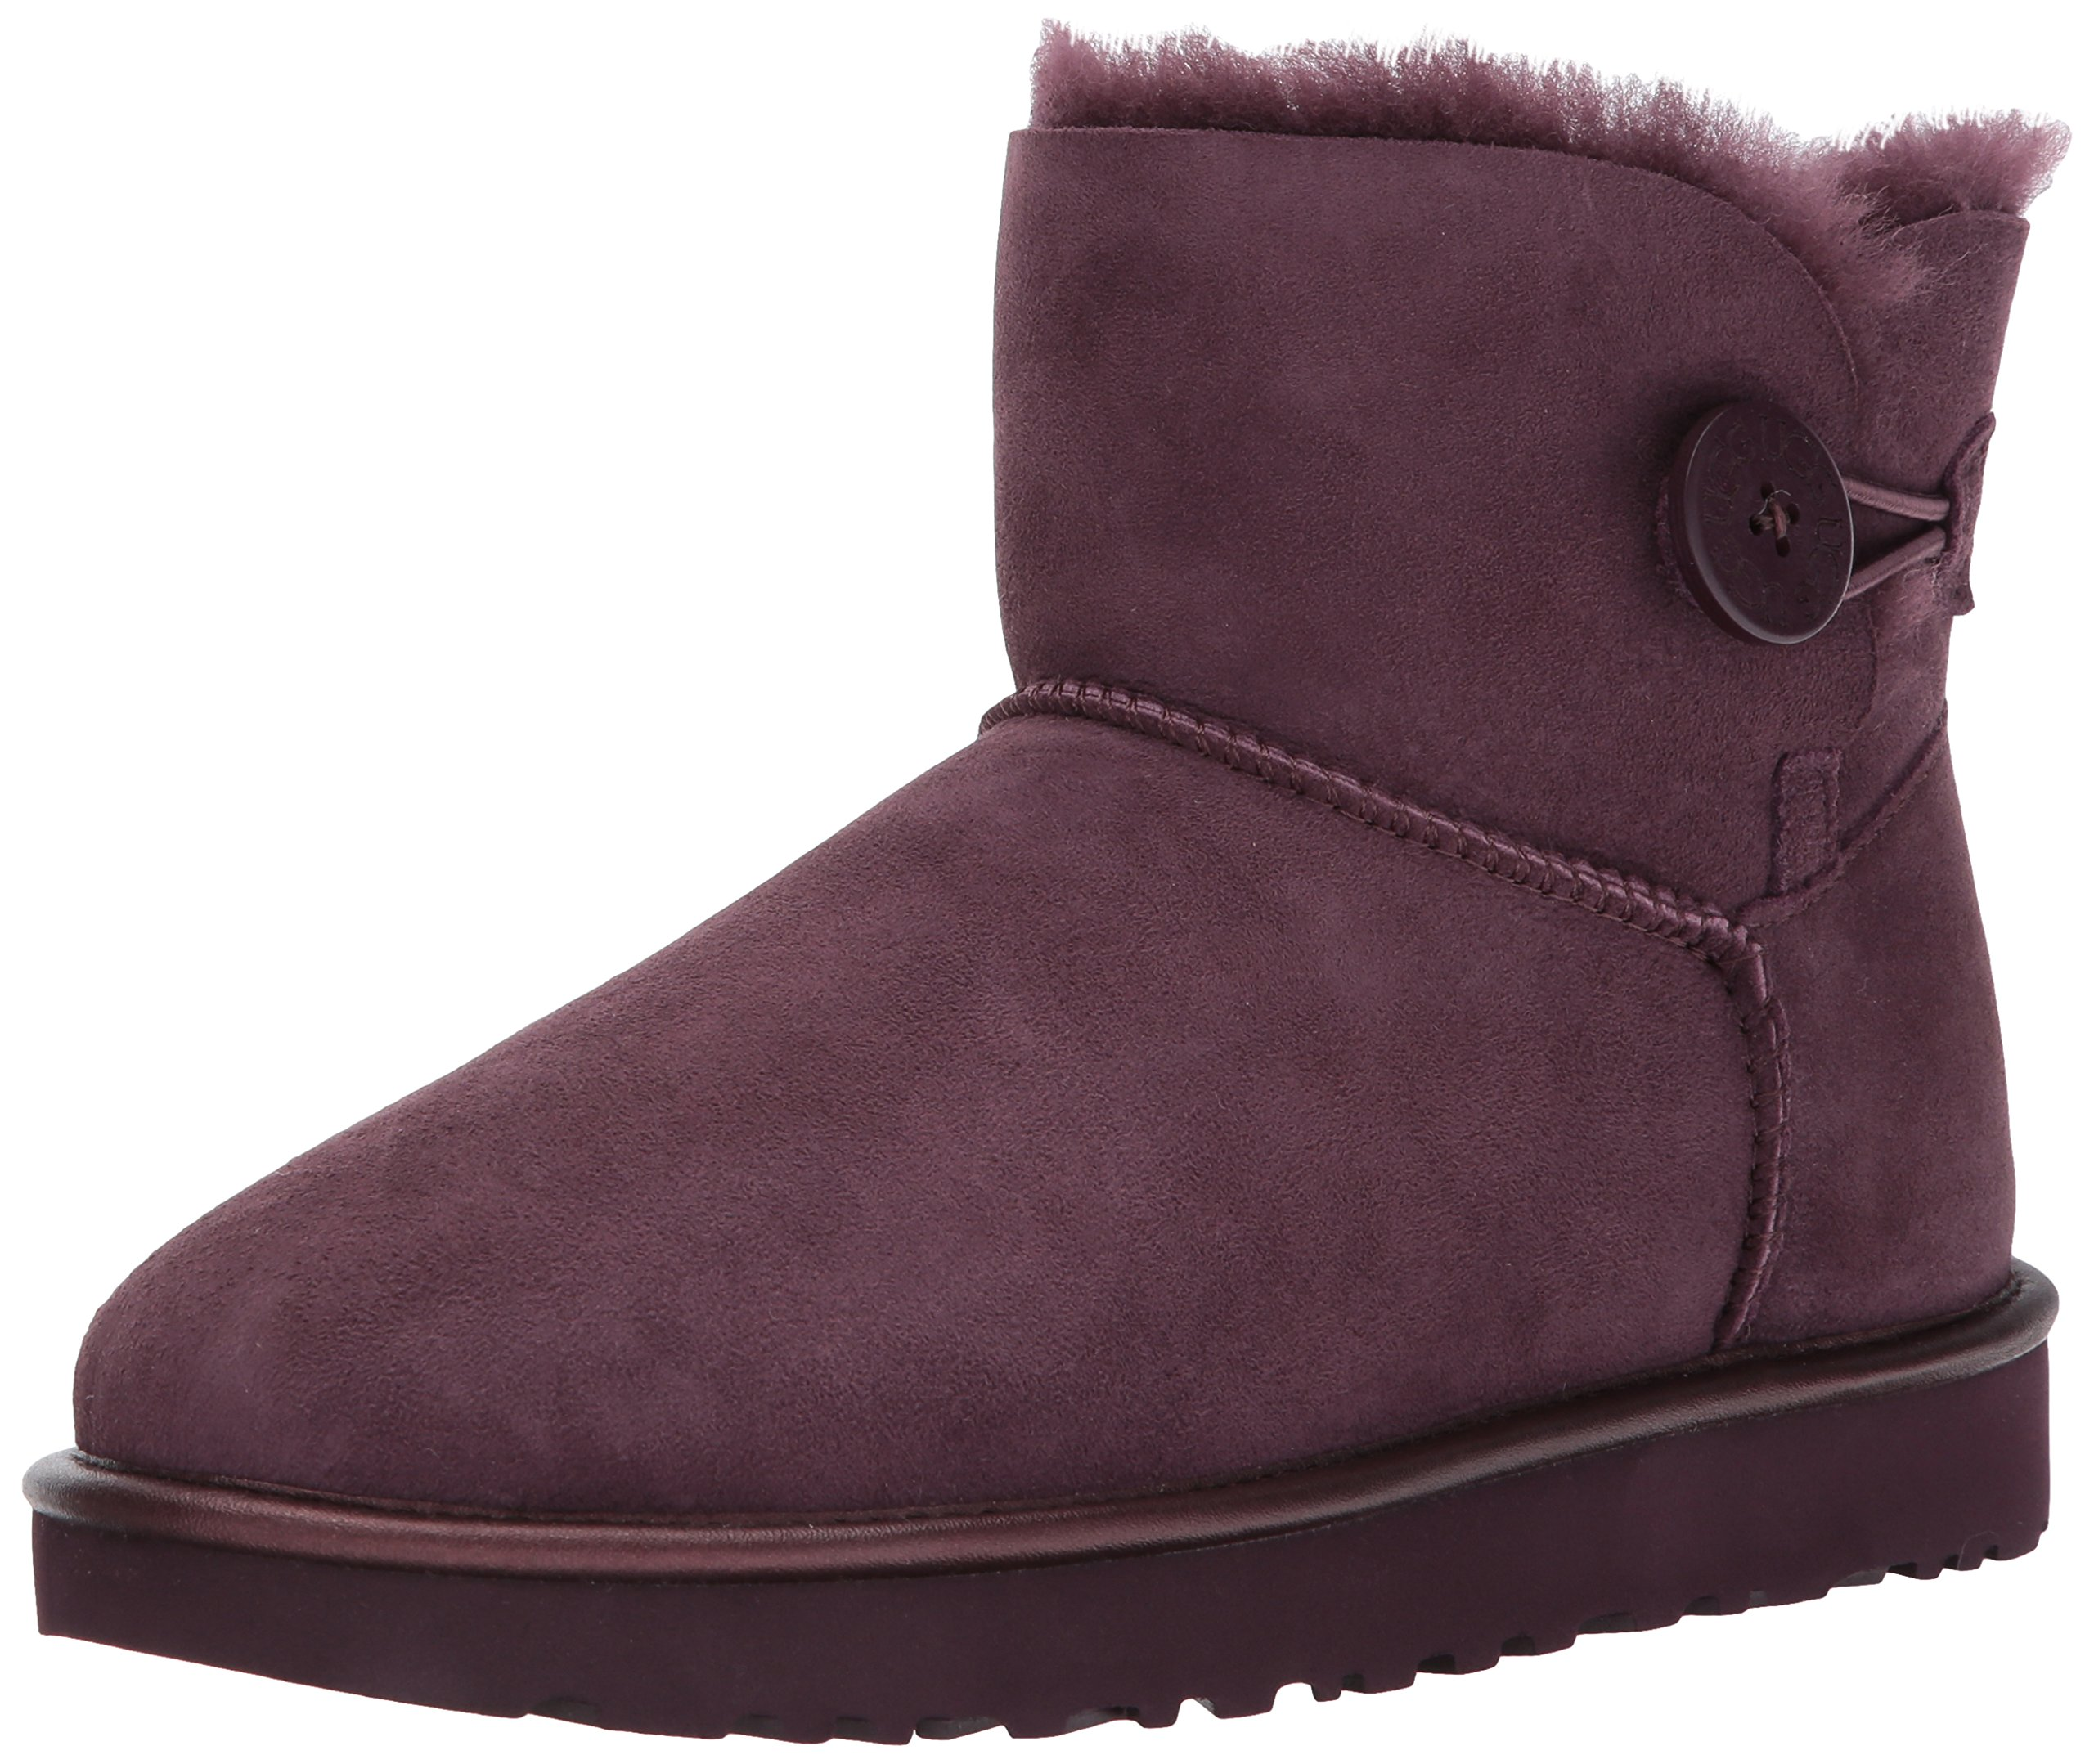 UGG Women's Mini Bailey Button Ii Metallic Winter Boot,Port,10 M US